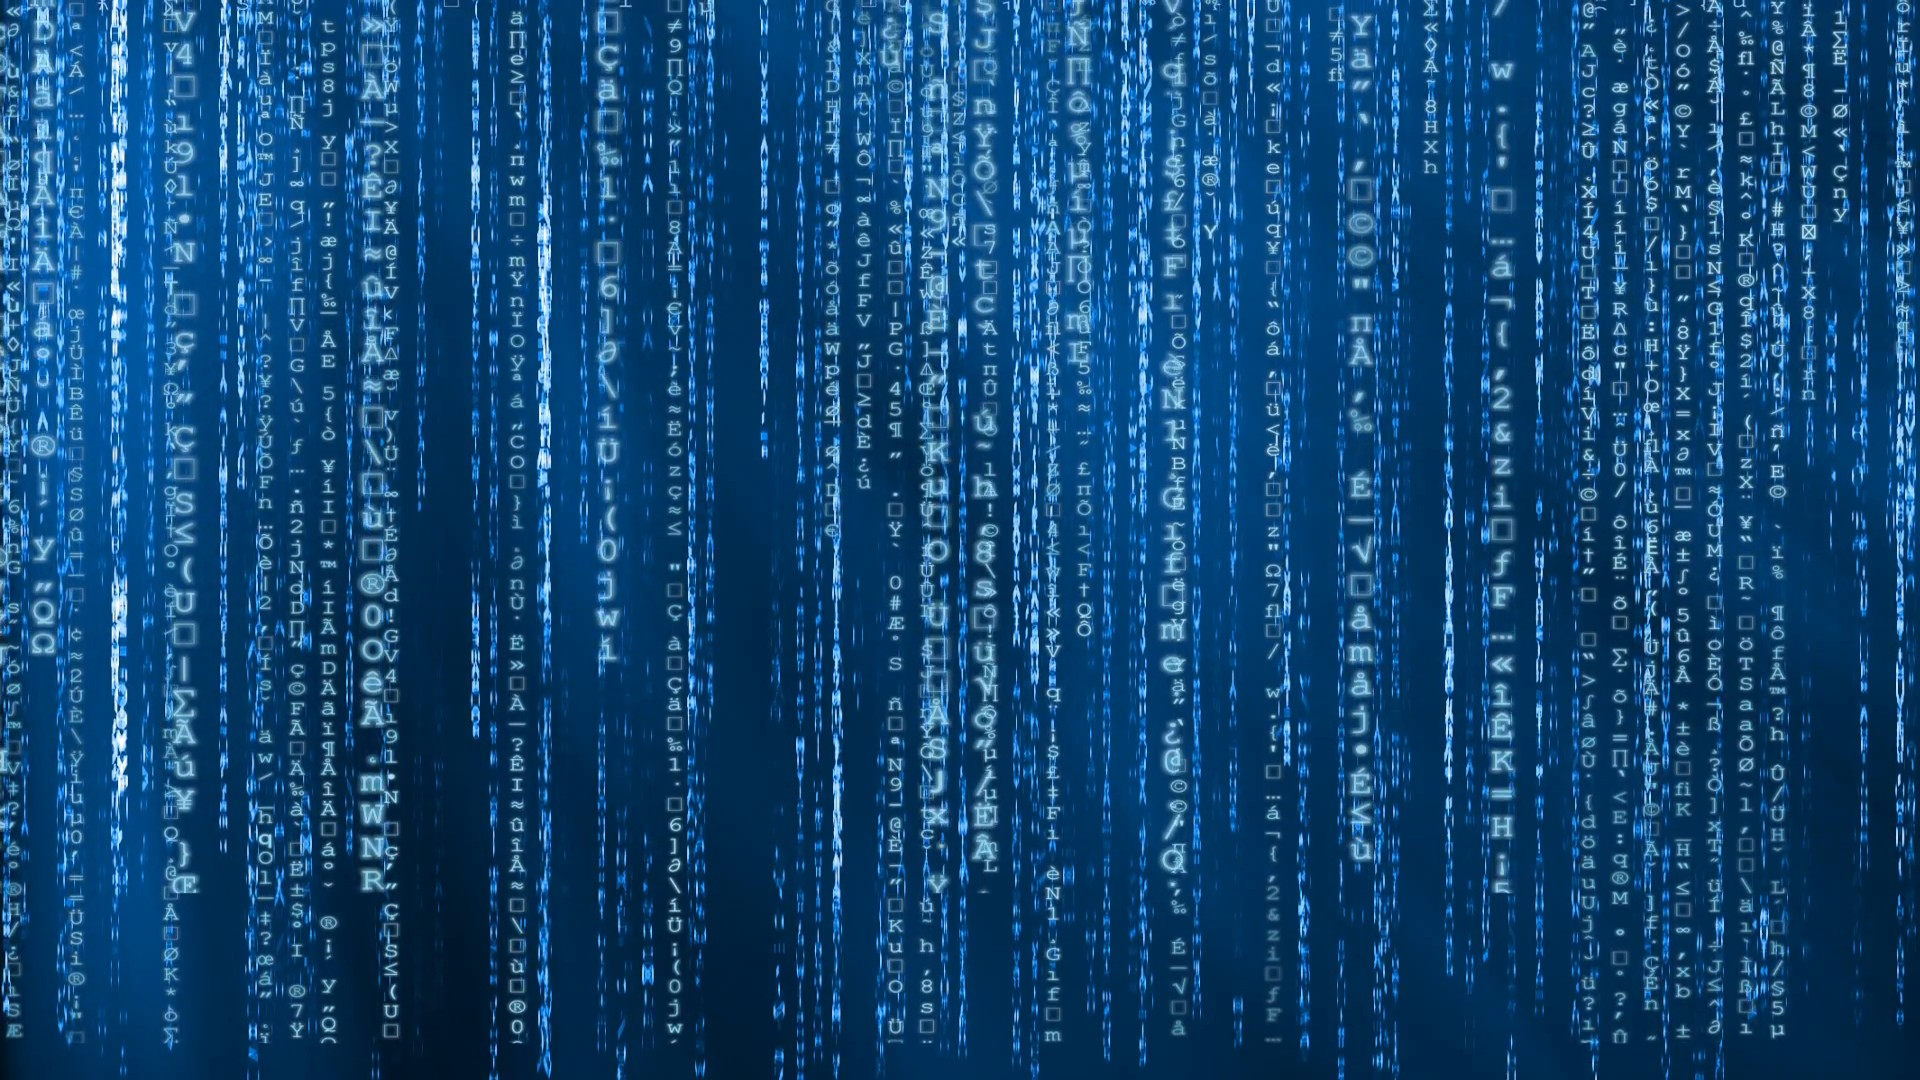 Matrix background download free amazing backgrounds for for Matrix mobili